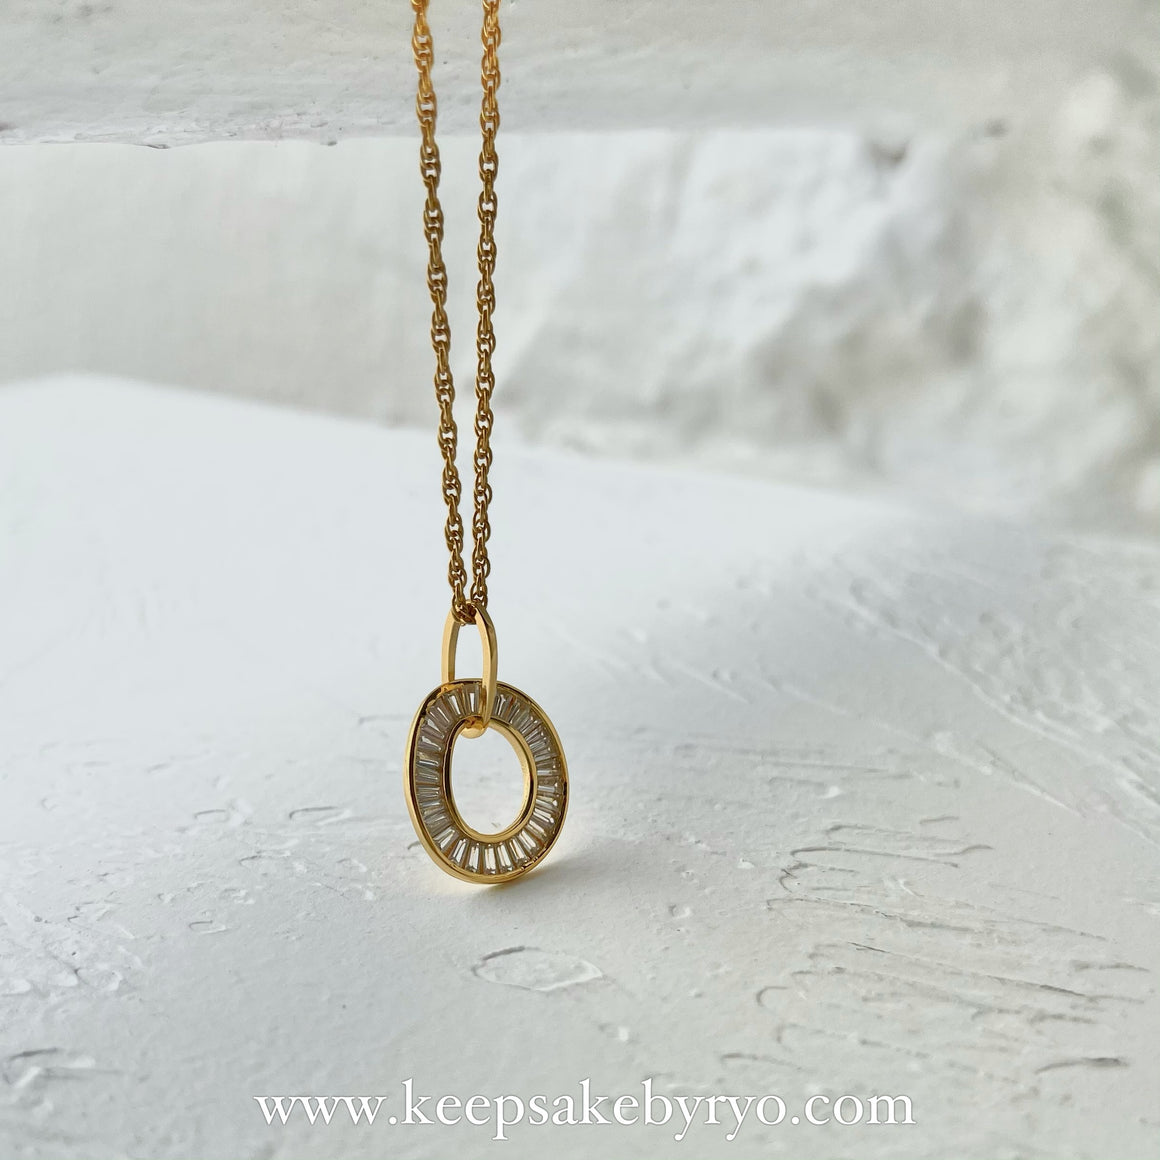 KEEPLETS COLLECTION: HANDCRAFTED O NECKLACE